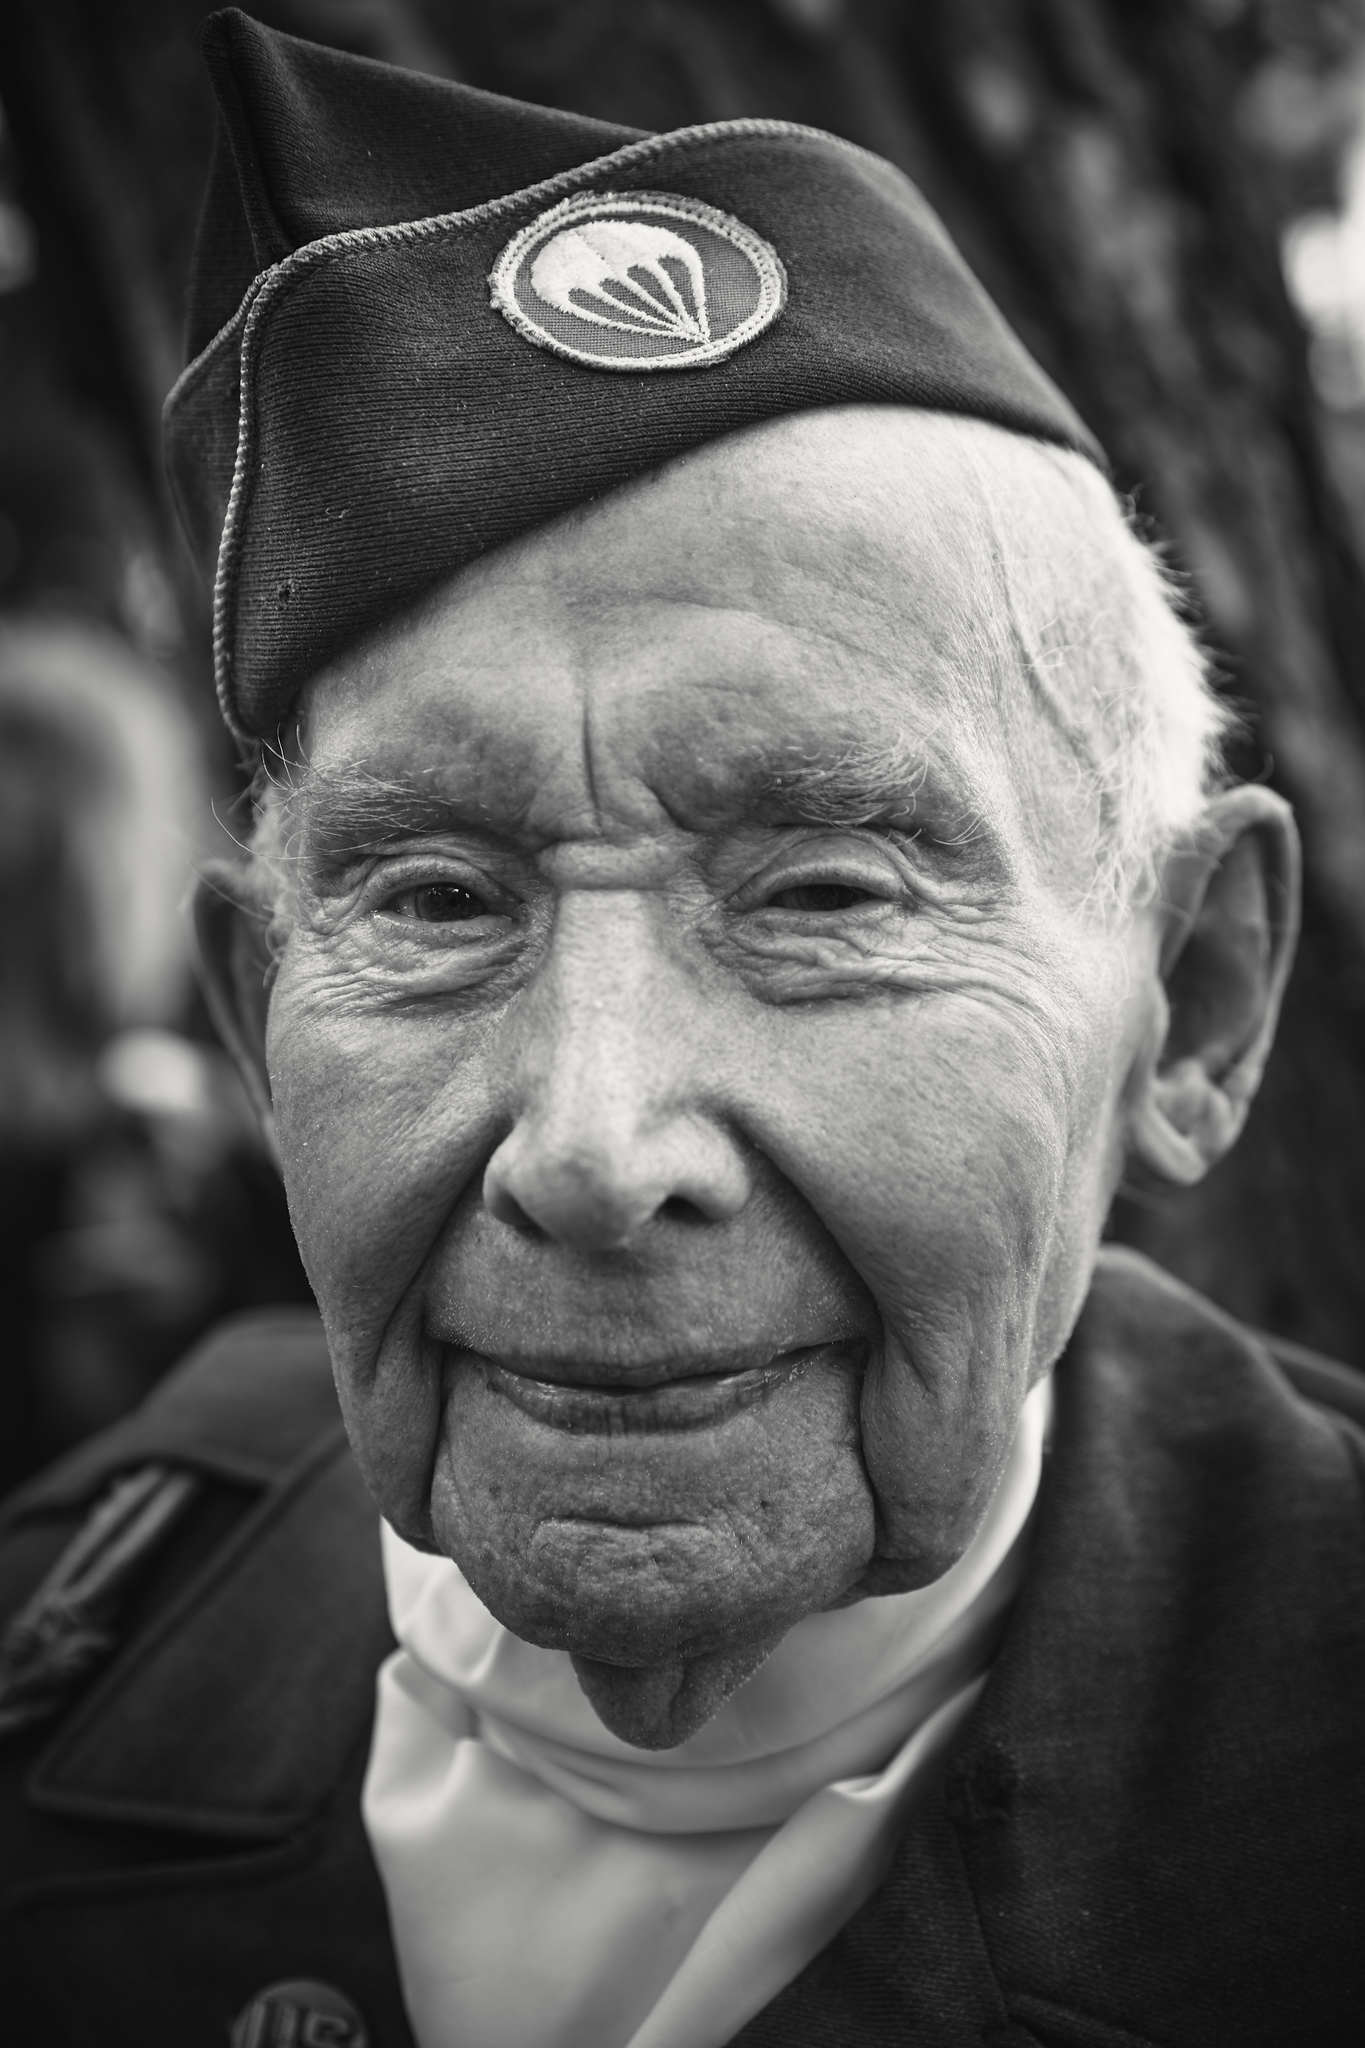 D-DAY VETERANS, FRANCE - JUNE 6: Joe Reily (98 yrs old), a member of the 101st Airbourne 501 divisio